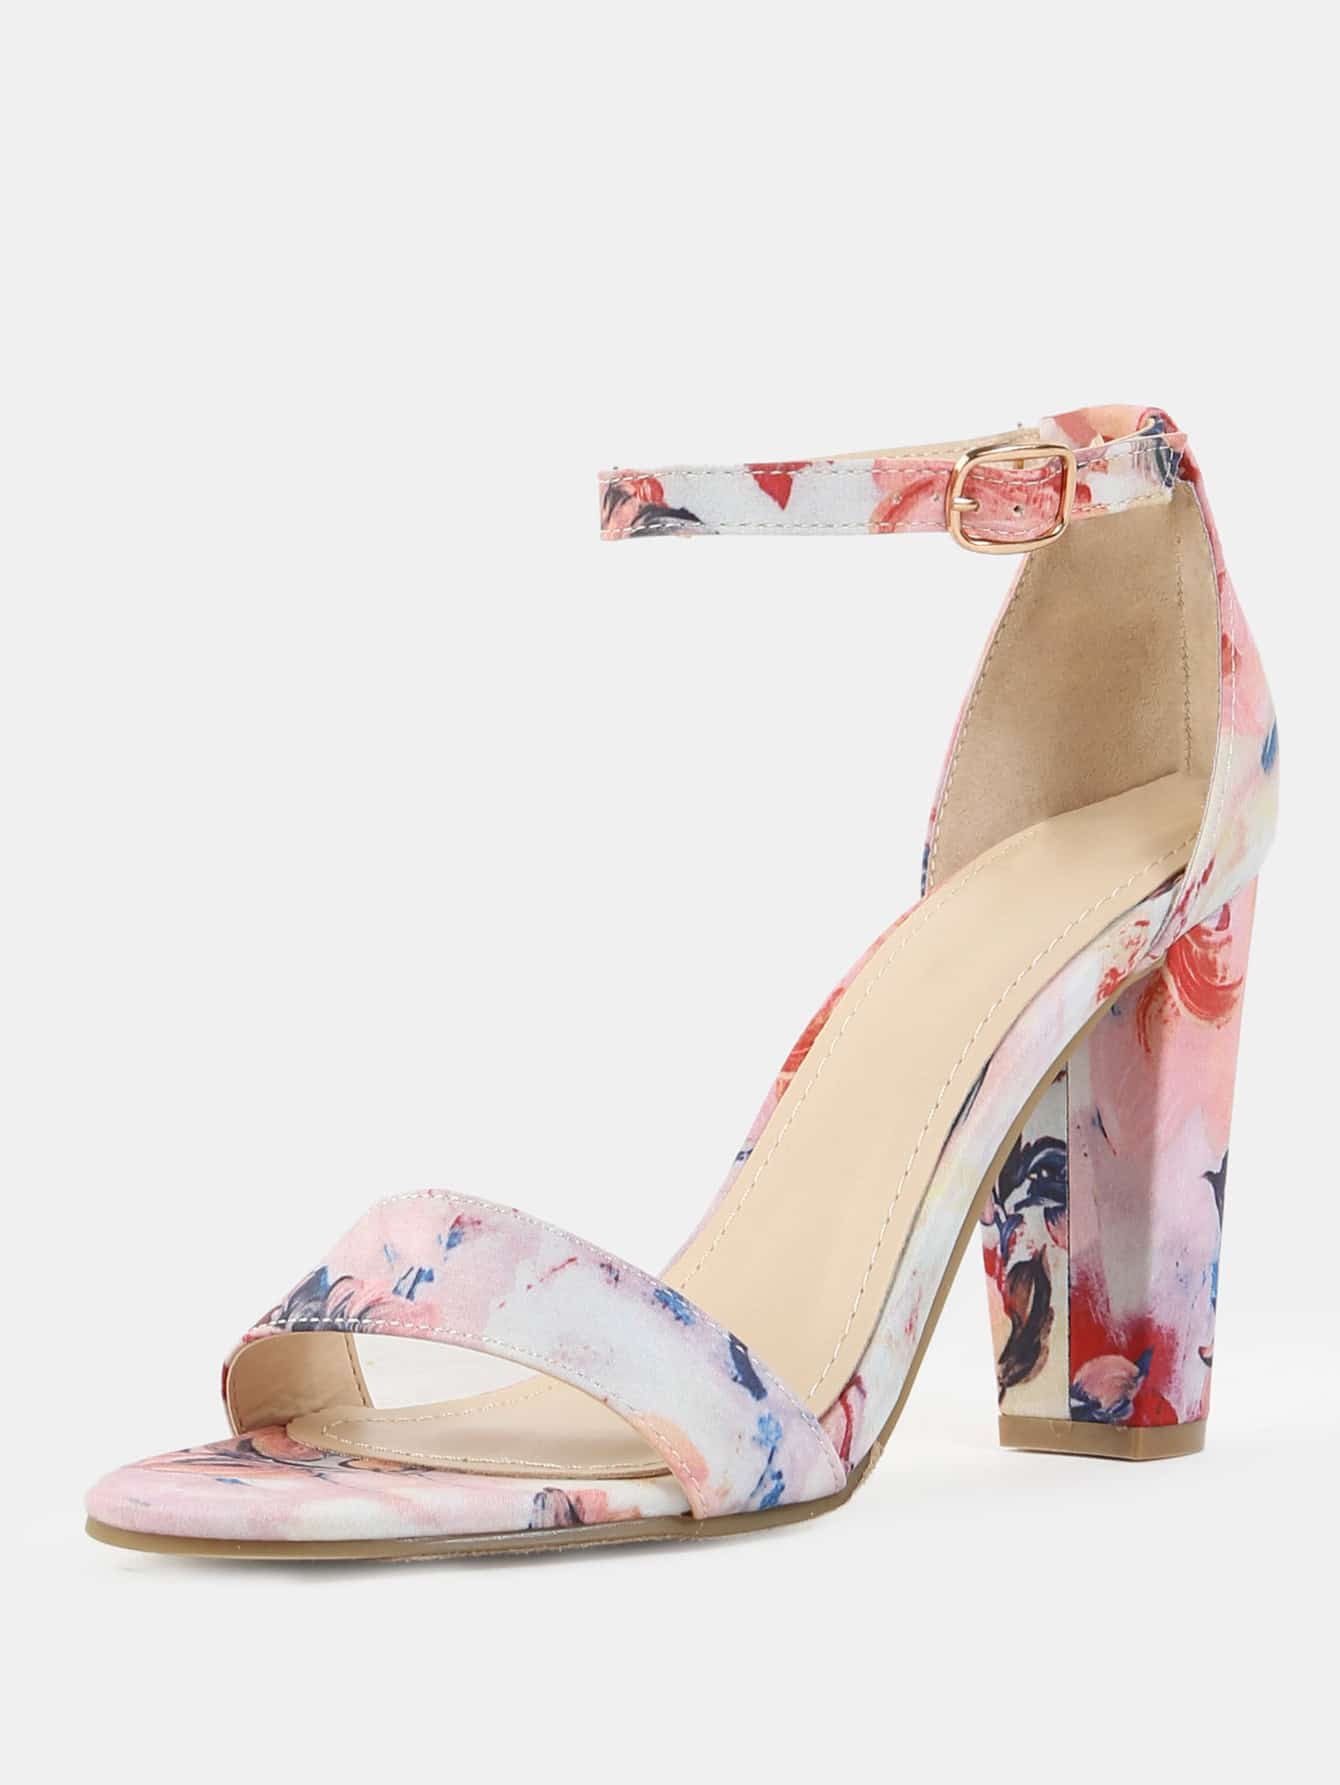 Weedding Shoes For Sale W